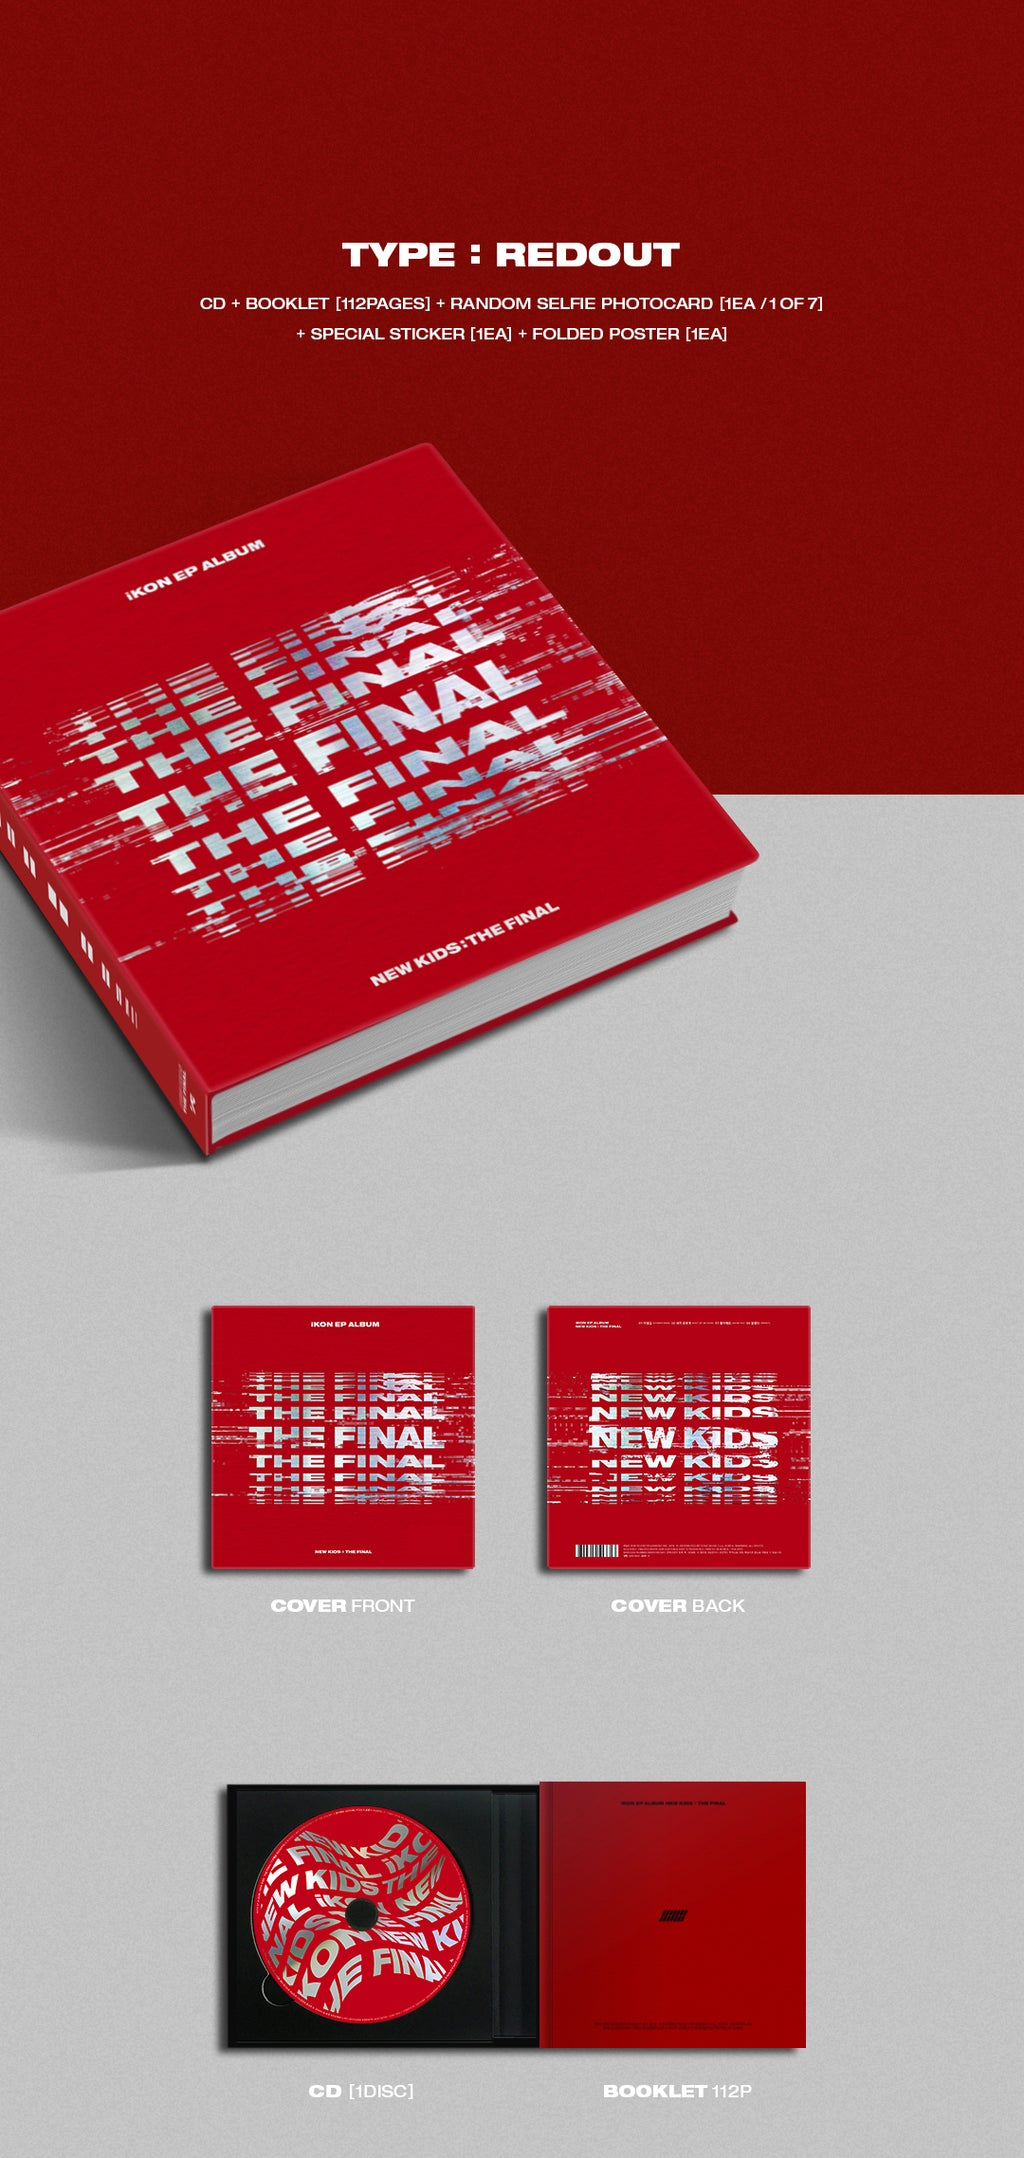 iKON - New Kids: The Final (rote Verison) - J-Store Online